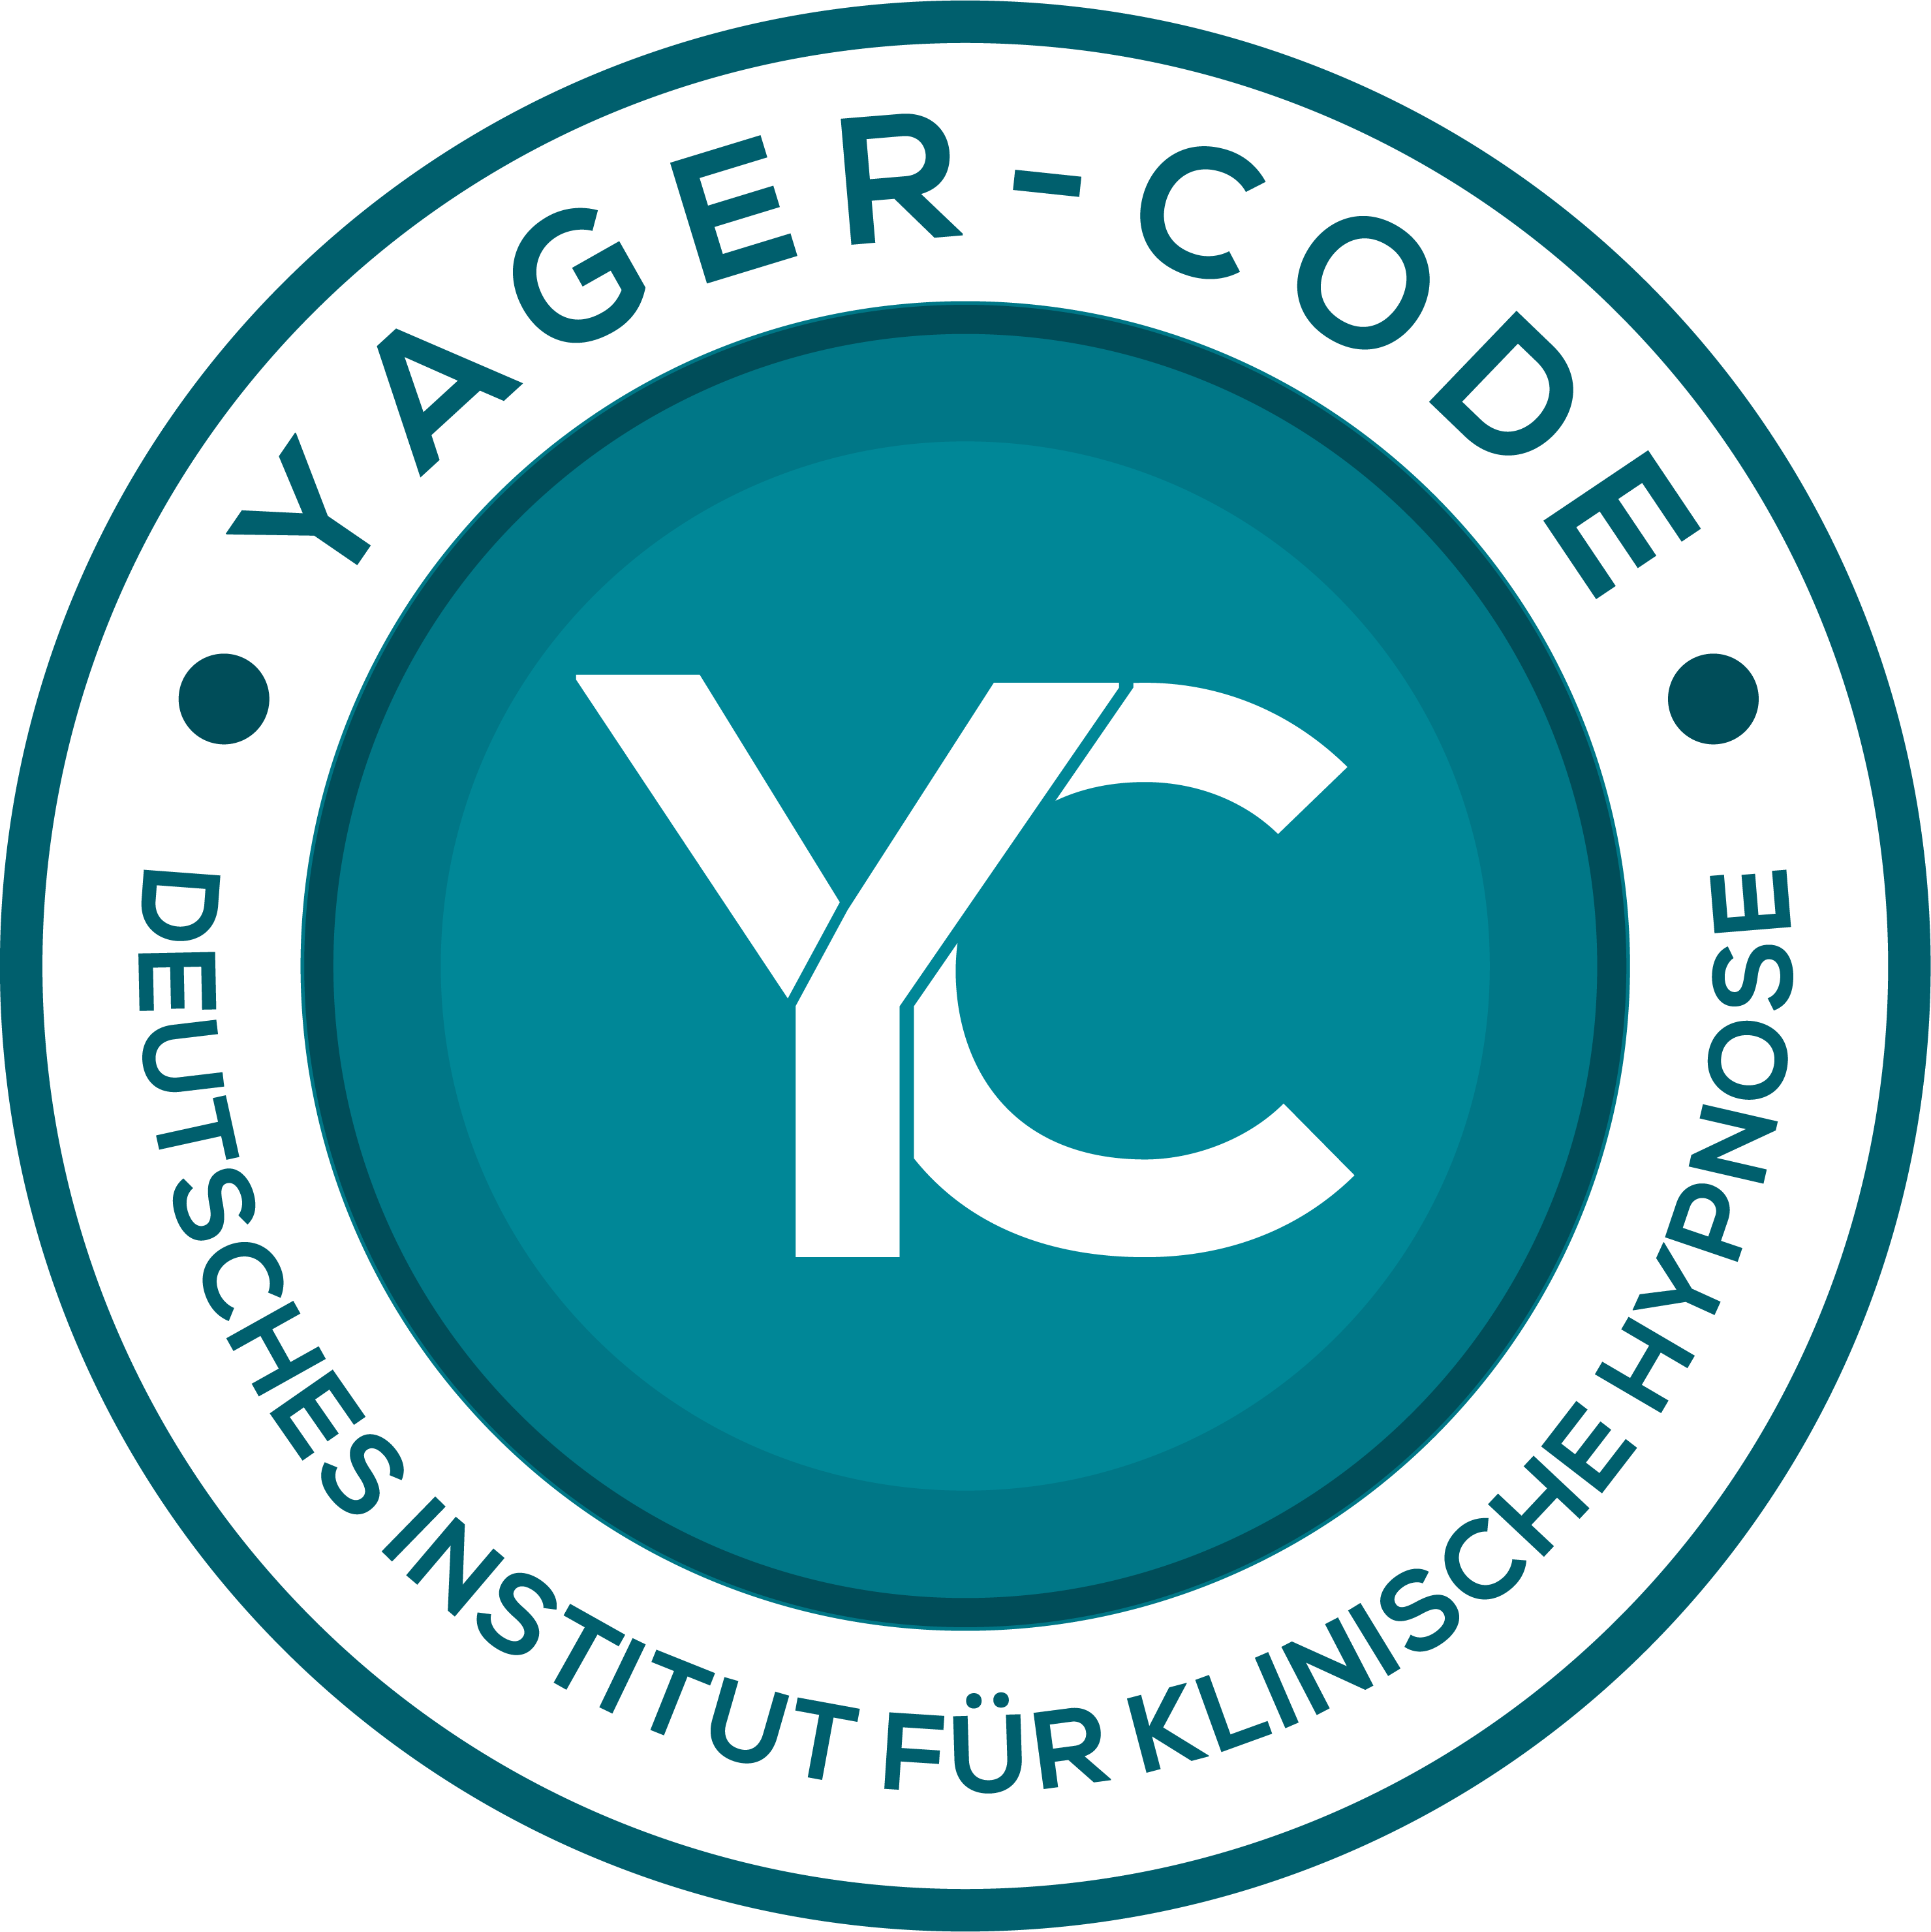 YAGER CODE